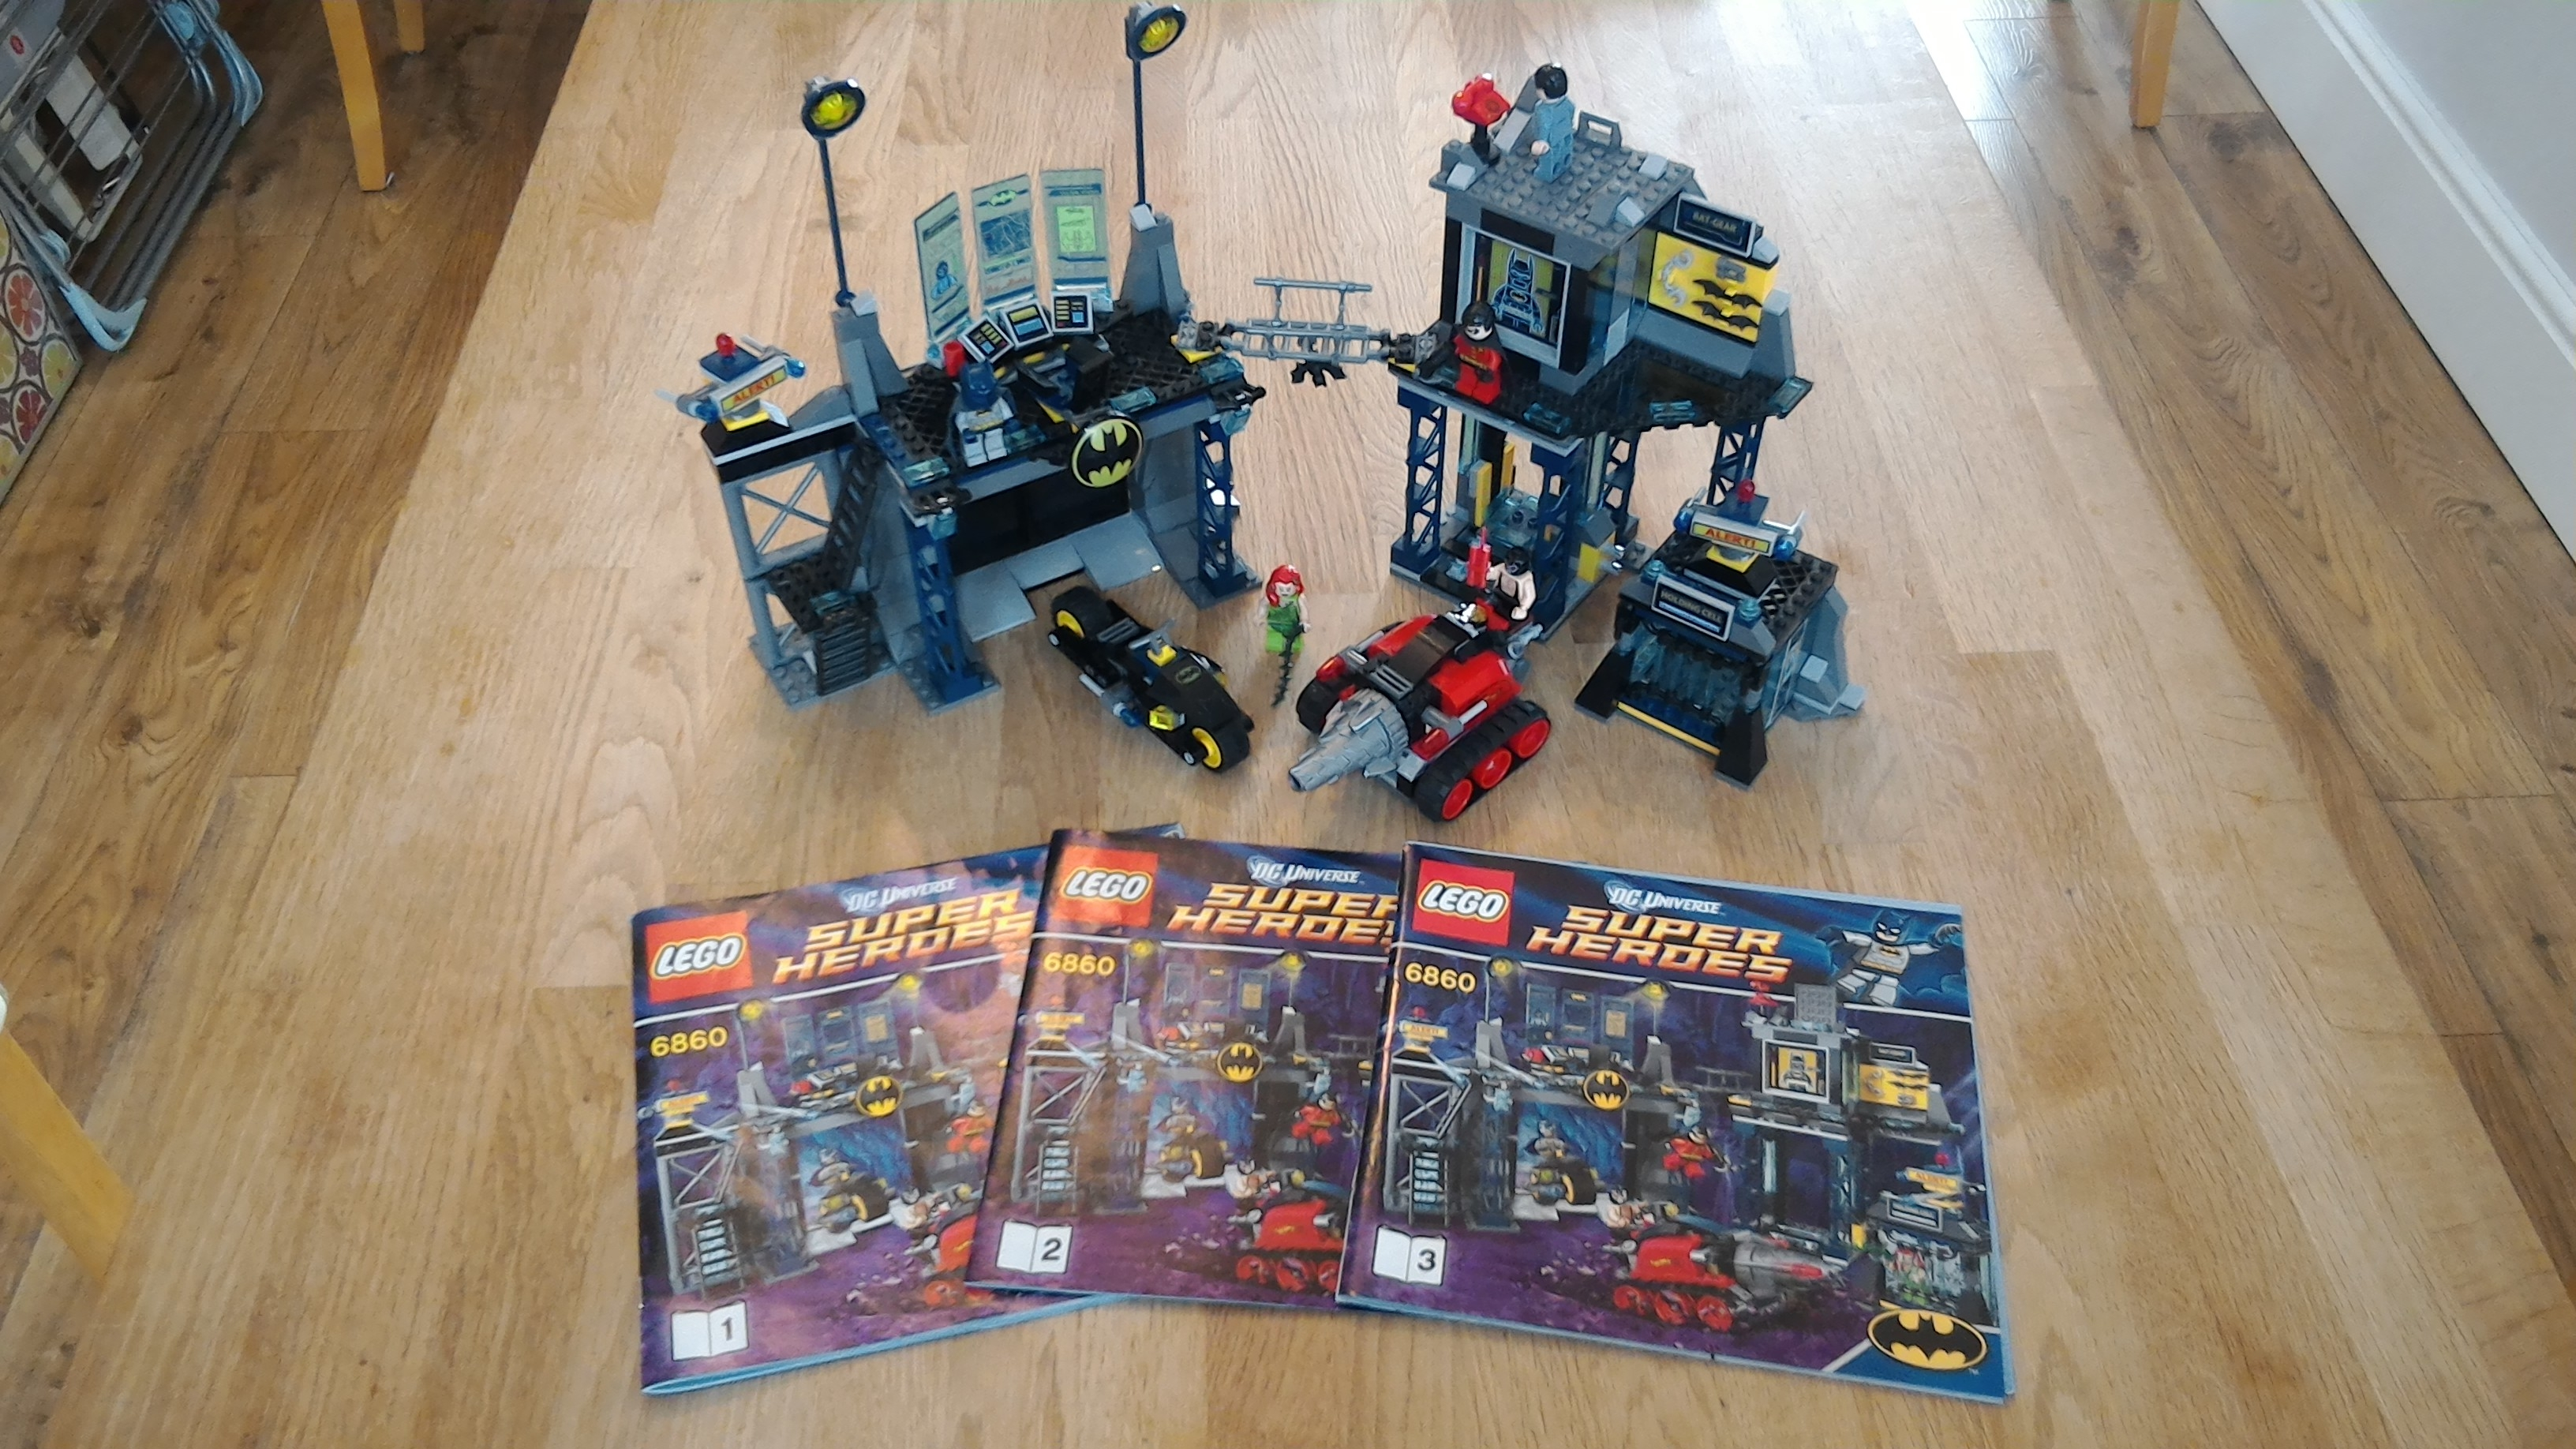 UK] FOR SALE: Super heroes baggage, funhouse, 2face chase